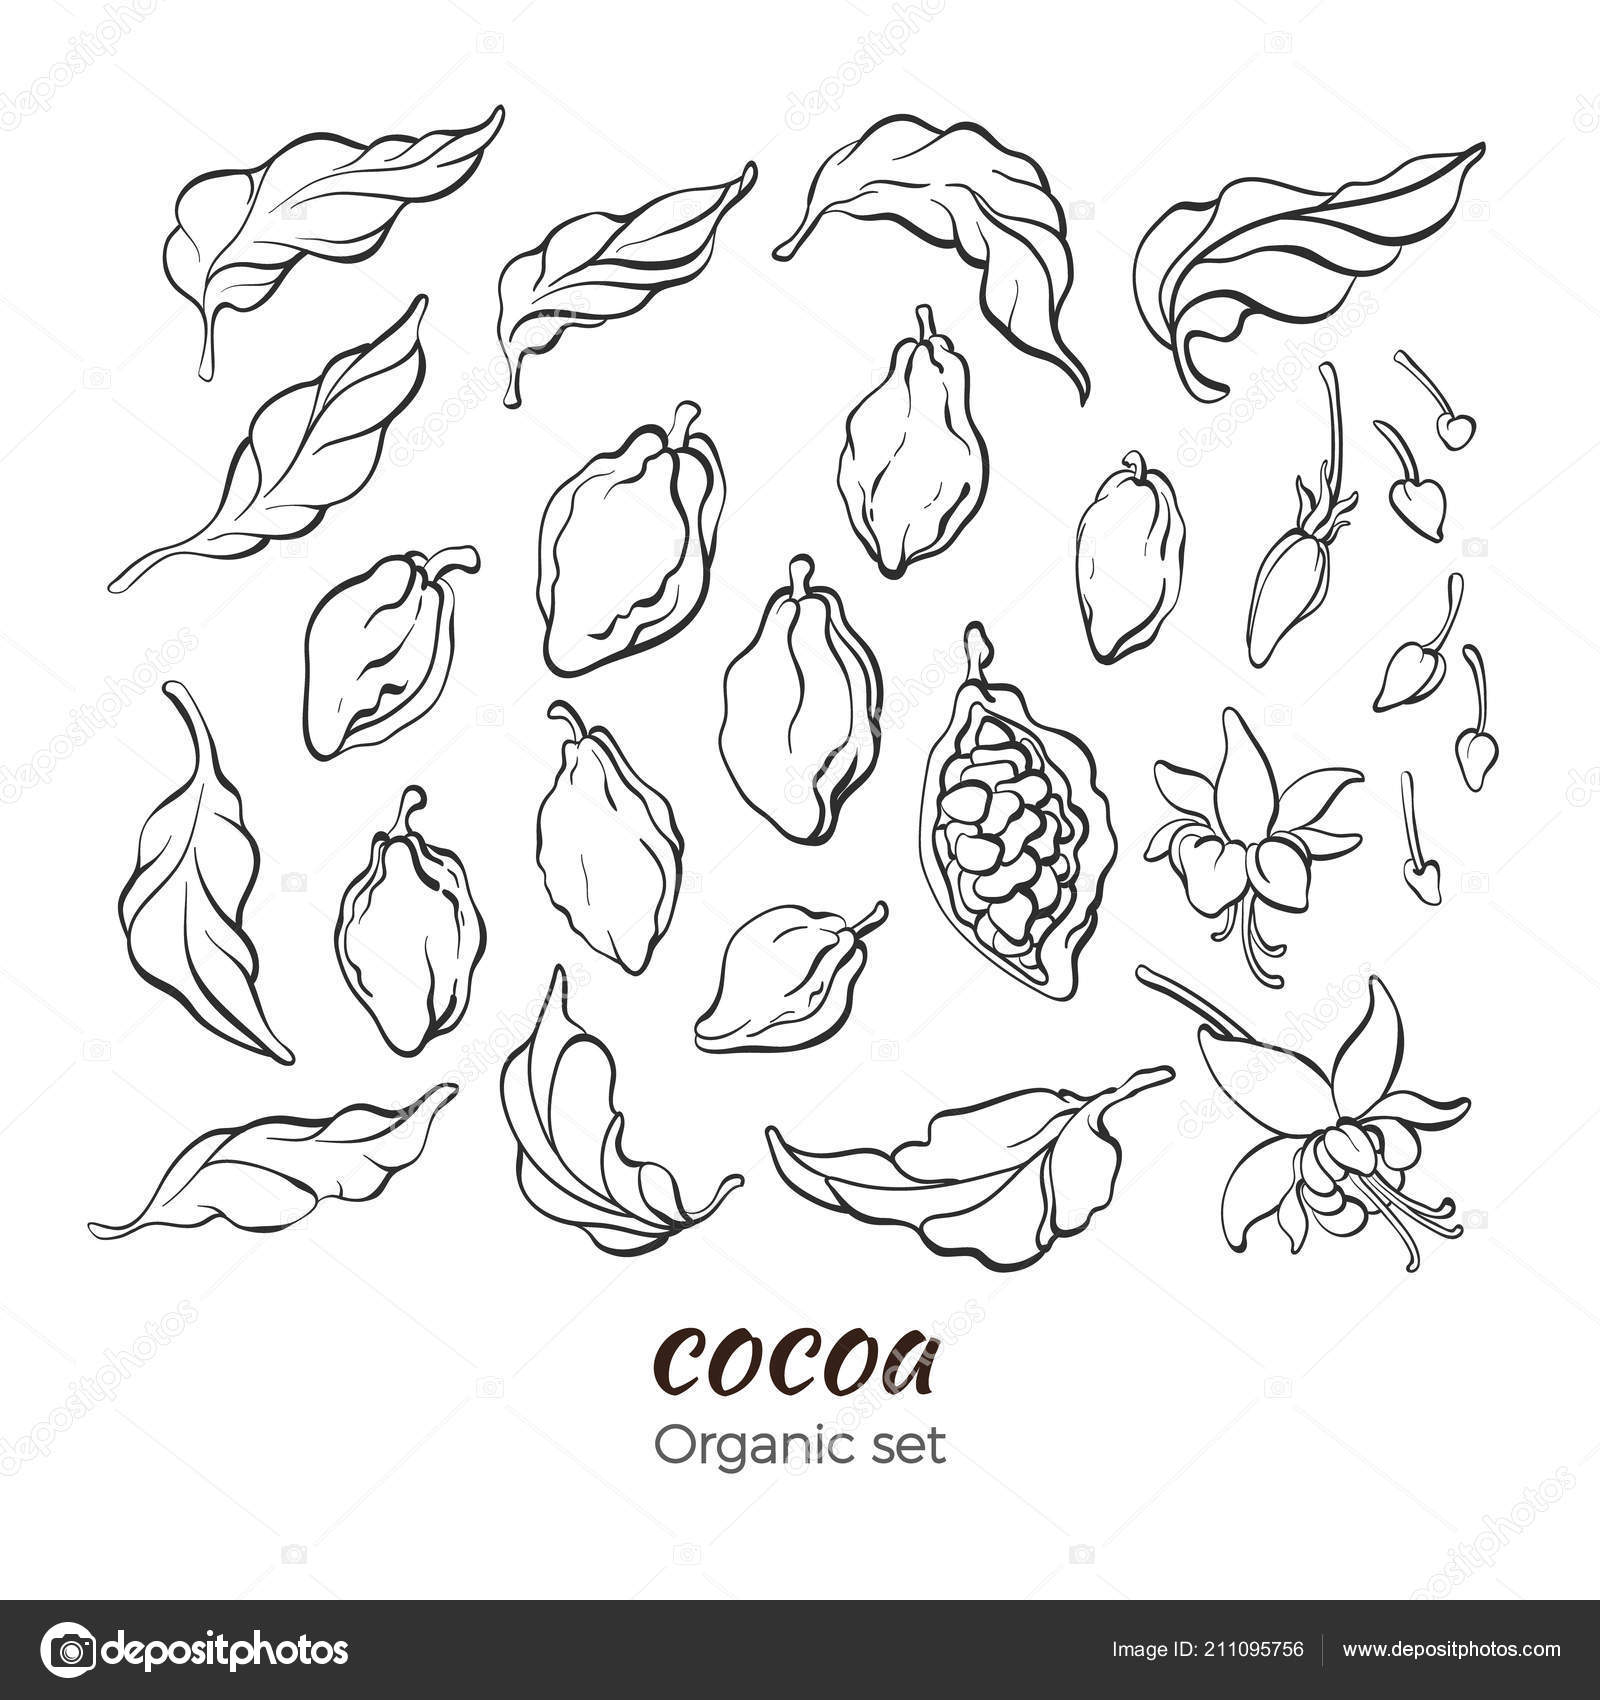 Vector set of cocoa tree leaves fruit bean flower sprout bud simple art line drawing collection organic natural sweet food bio drink